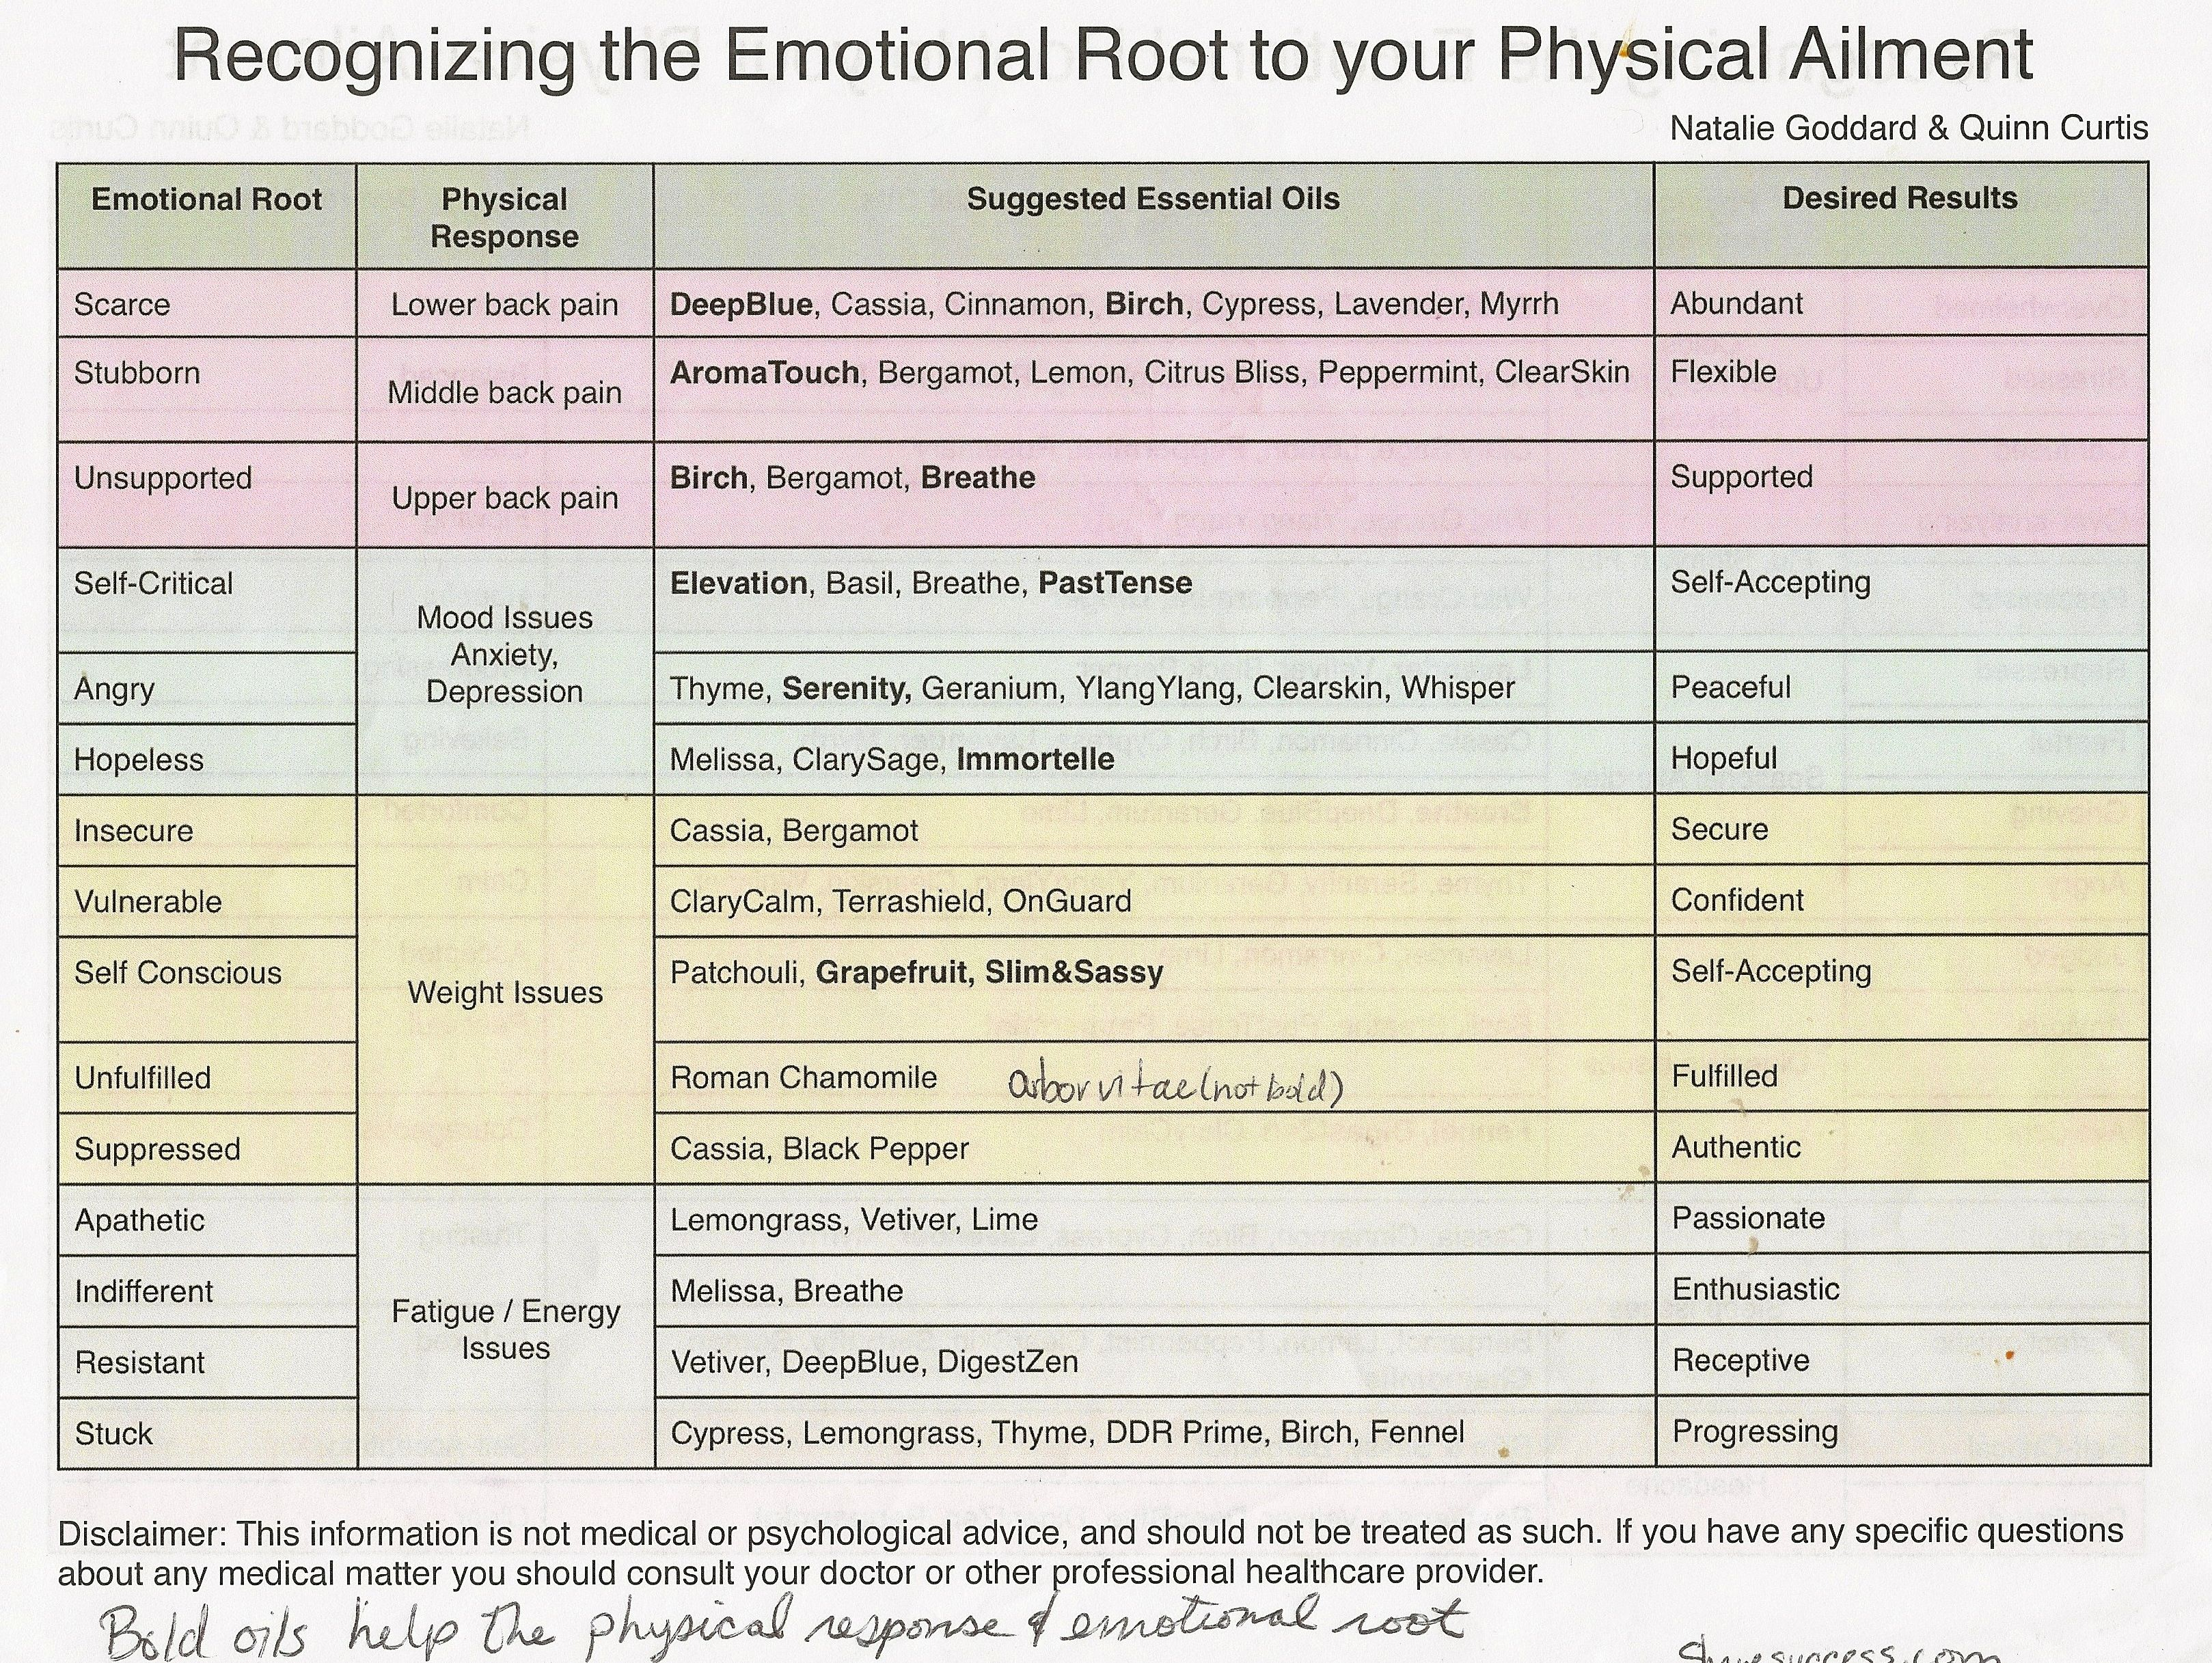 Emotional roots to physical ailment page 1 doterra oil blends emotional roots to physical ailment page 1 fandeluxe Images